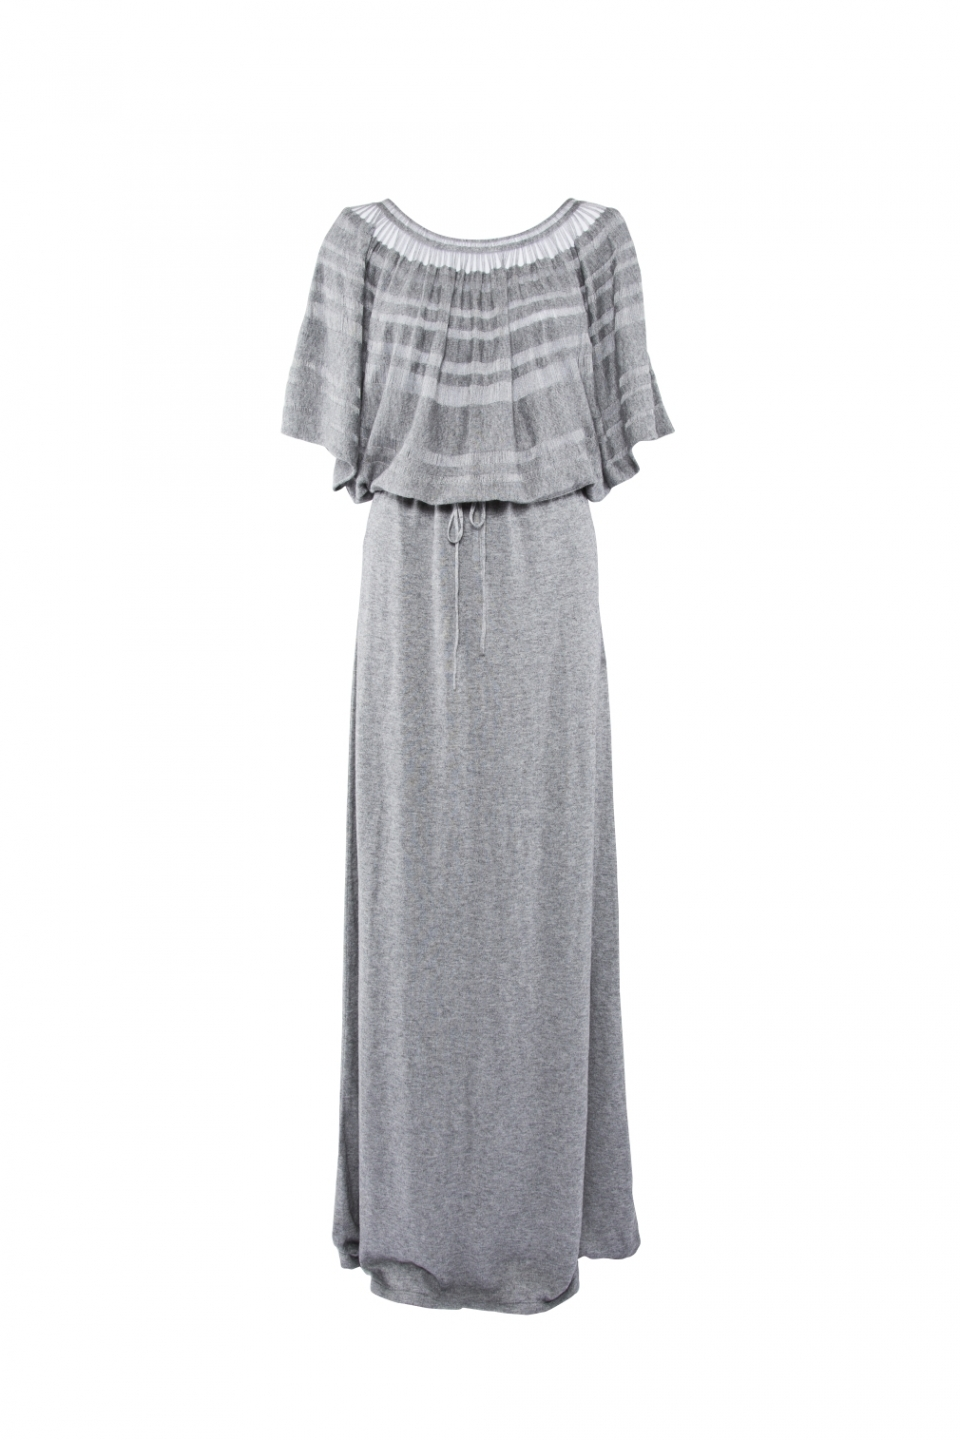 LONG LACELINE DRESS – GREY